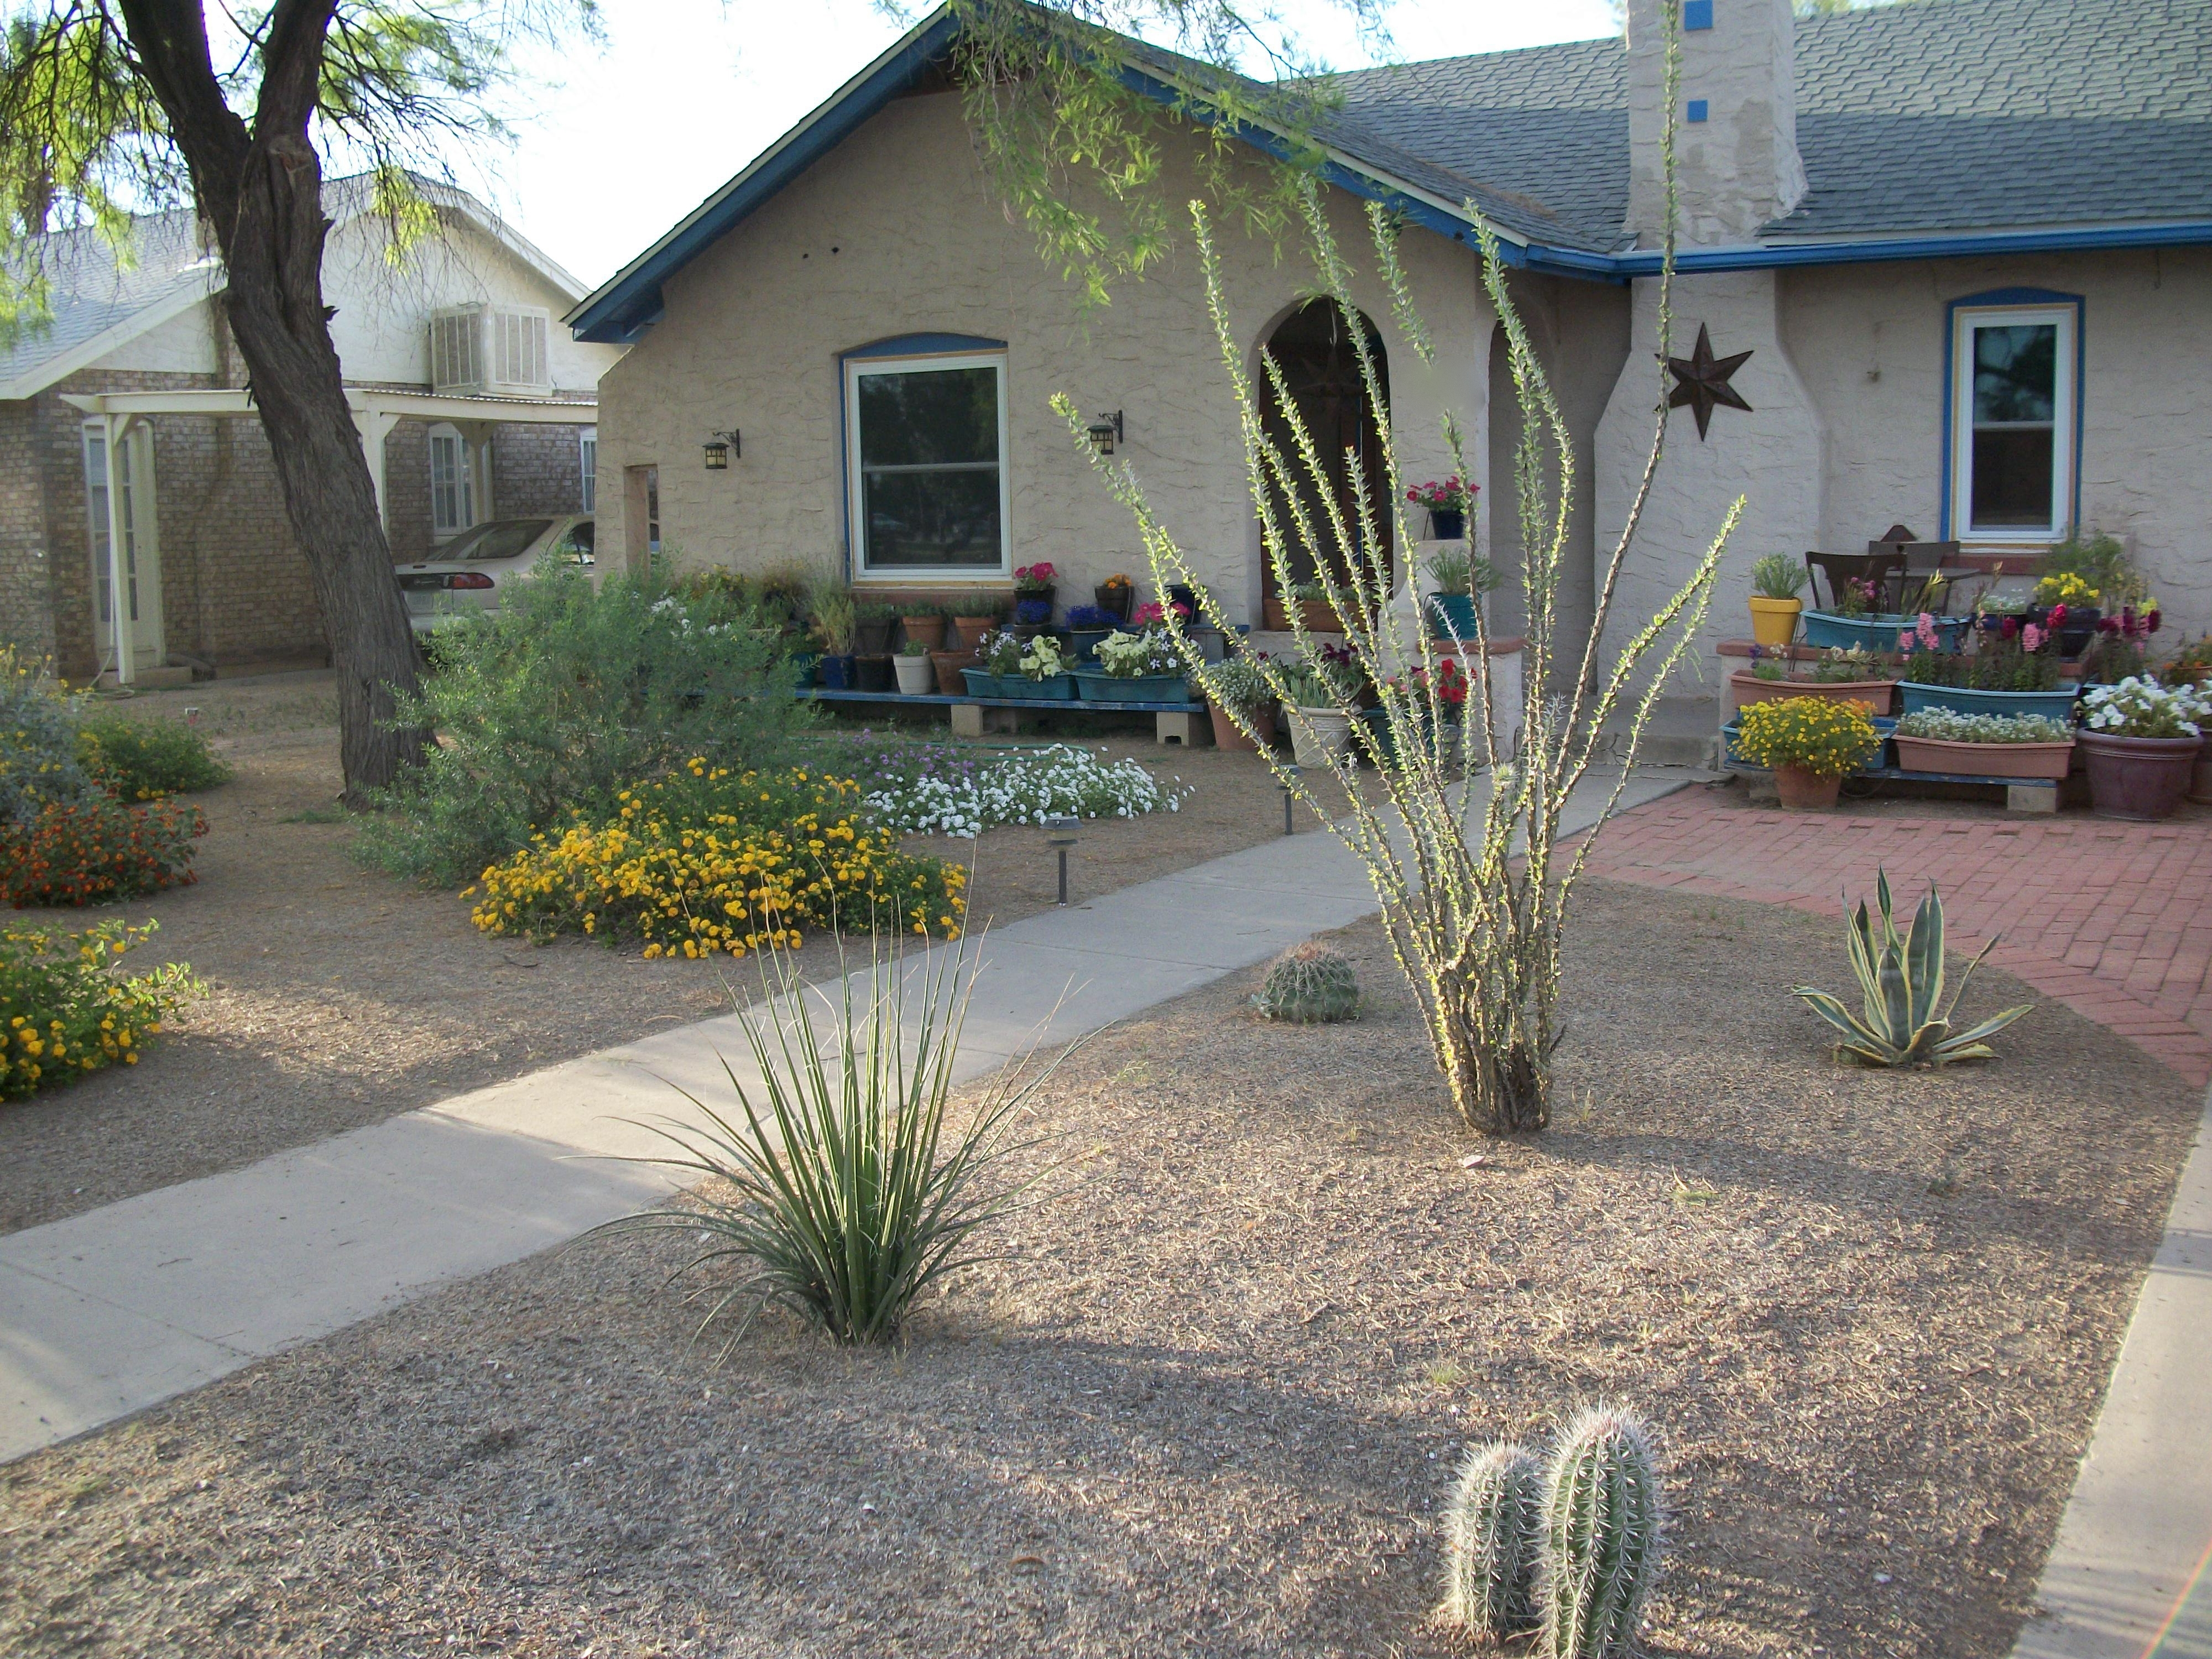 Image of: Landscaping Desert Landscaping Ideas For Space Outside Your Home Intended For Front Yard Desert Landscaping Ideas Attractive Front Yard Desert Landscaping Ideas